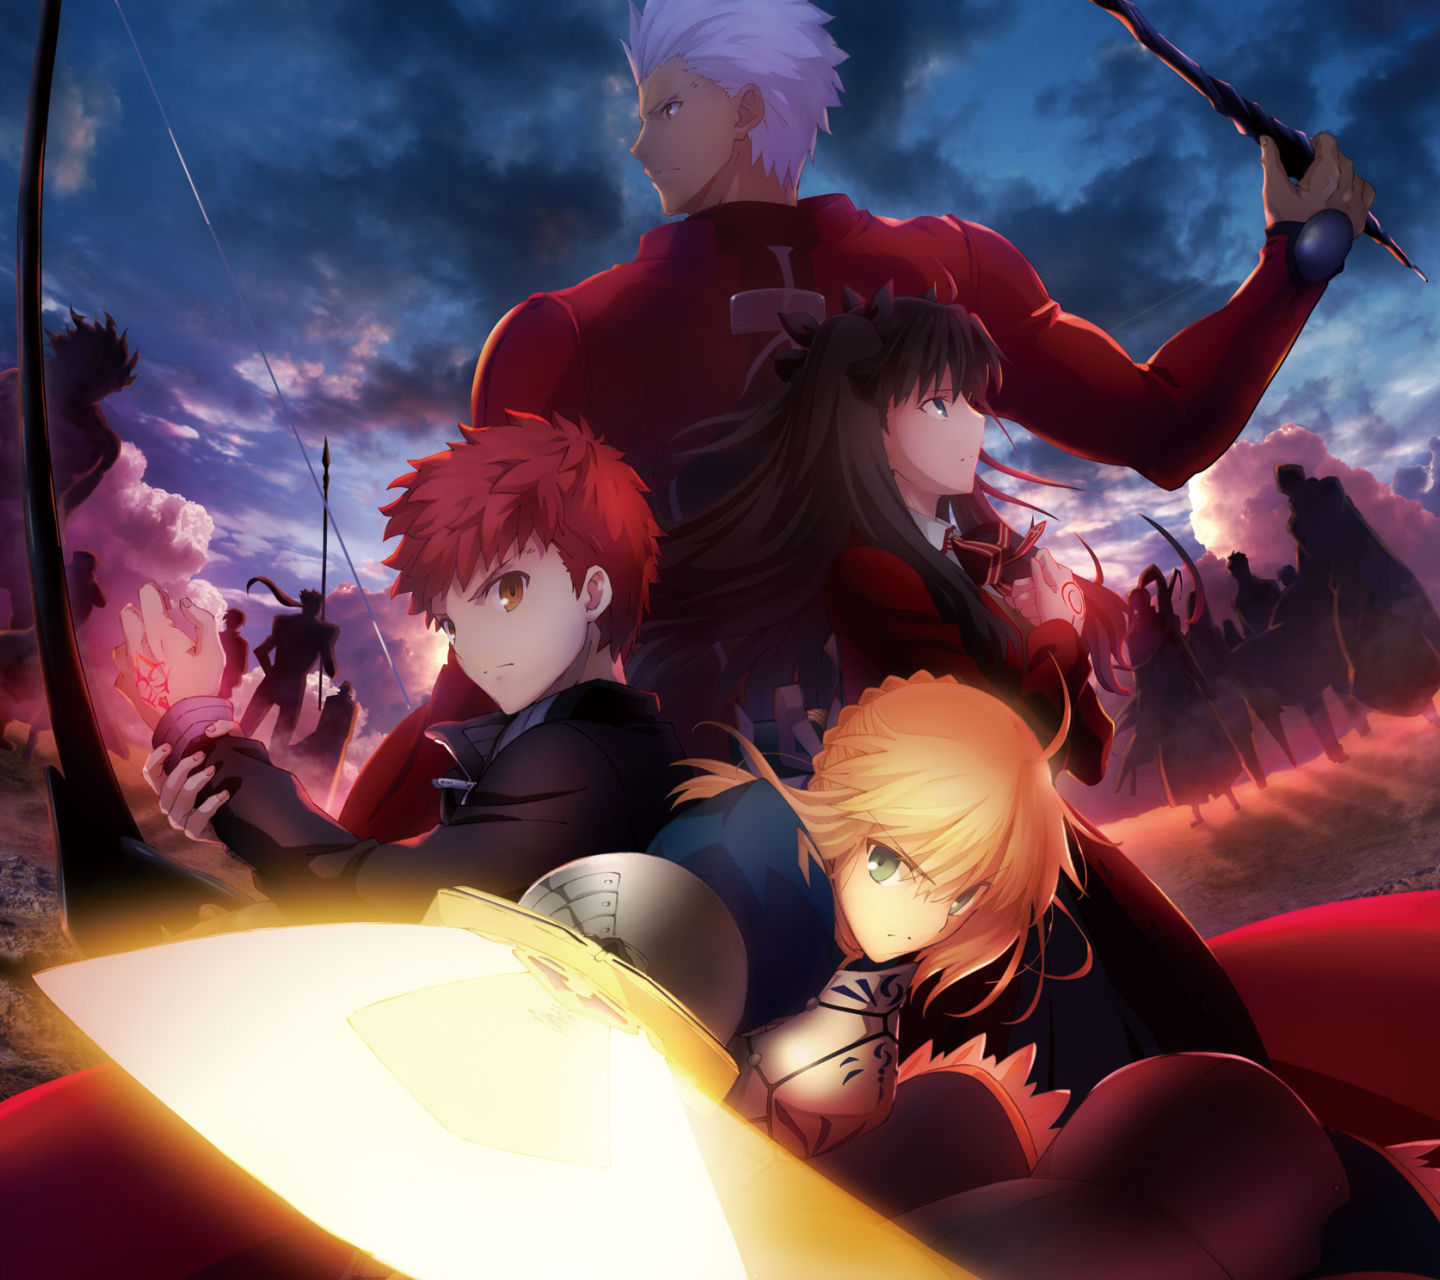 Fate Stay Night Android壁紙 画像 1 1440 1280 アニメ壁紙ネット Pc Android Iphone壁紙 画像